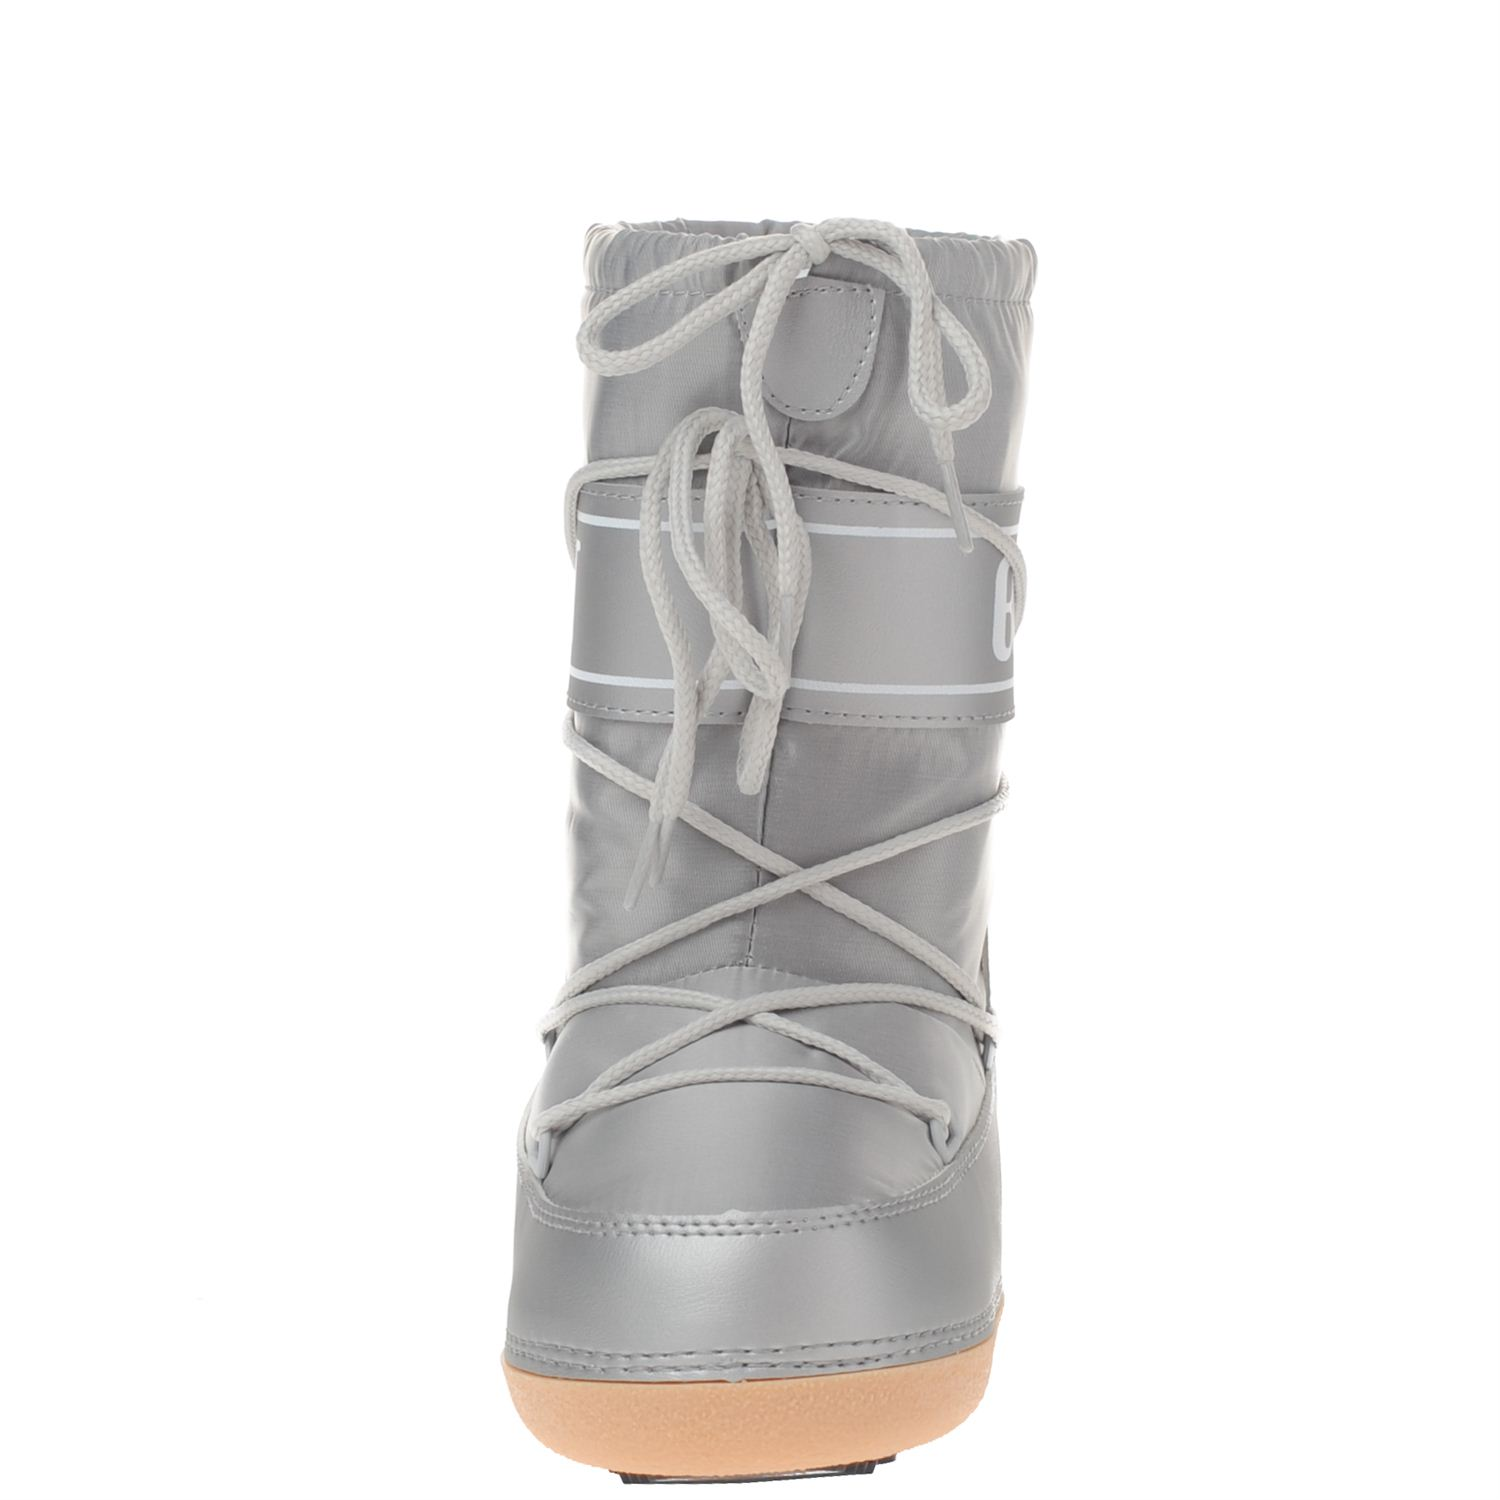 Nelson - Snowboots - Zilver NciA4GE